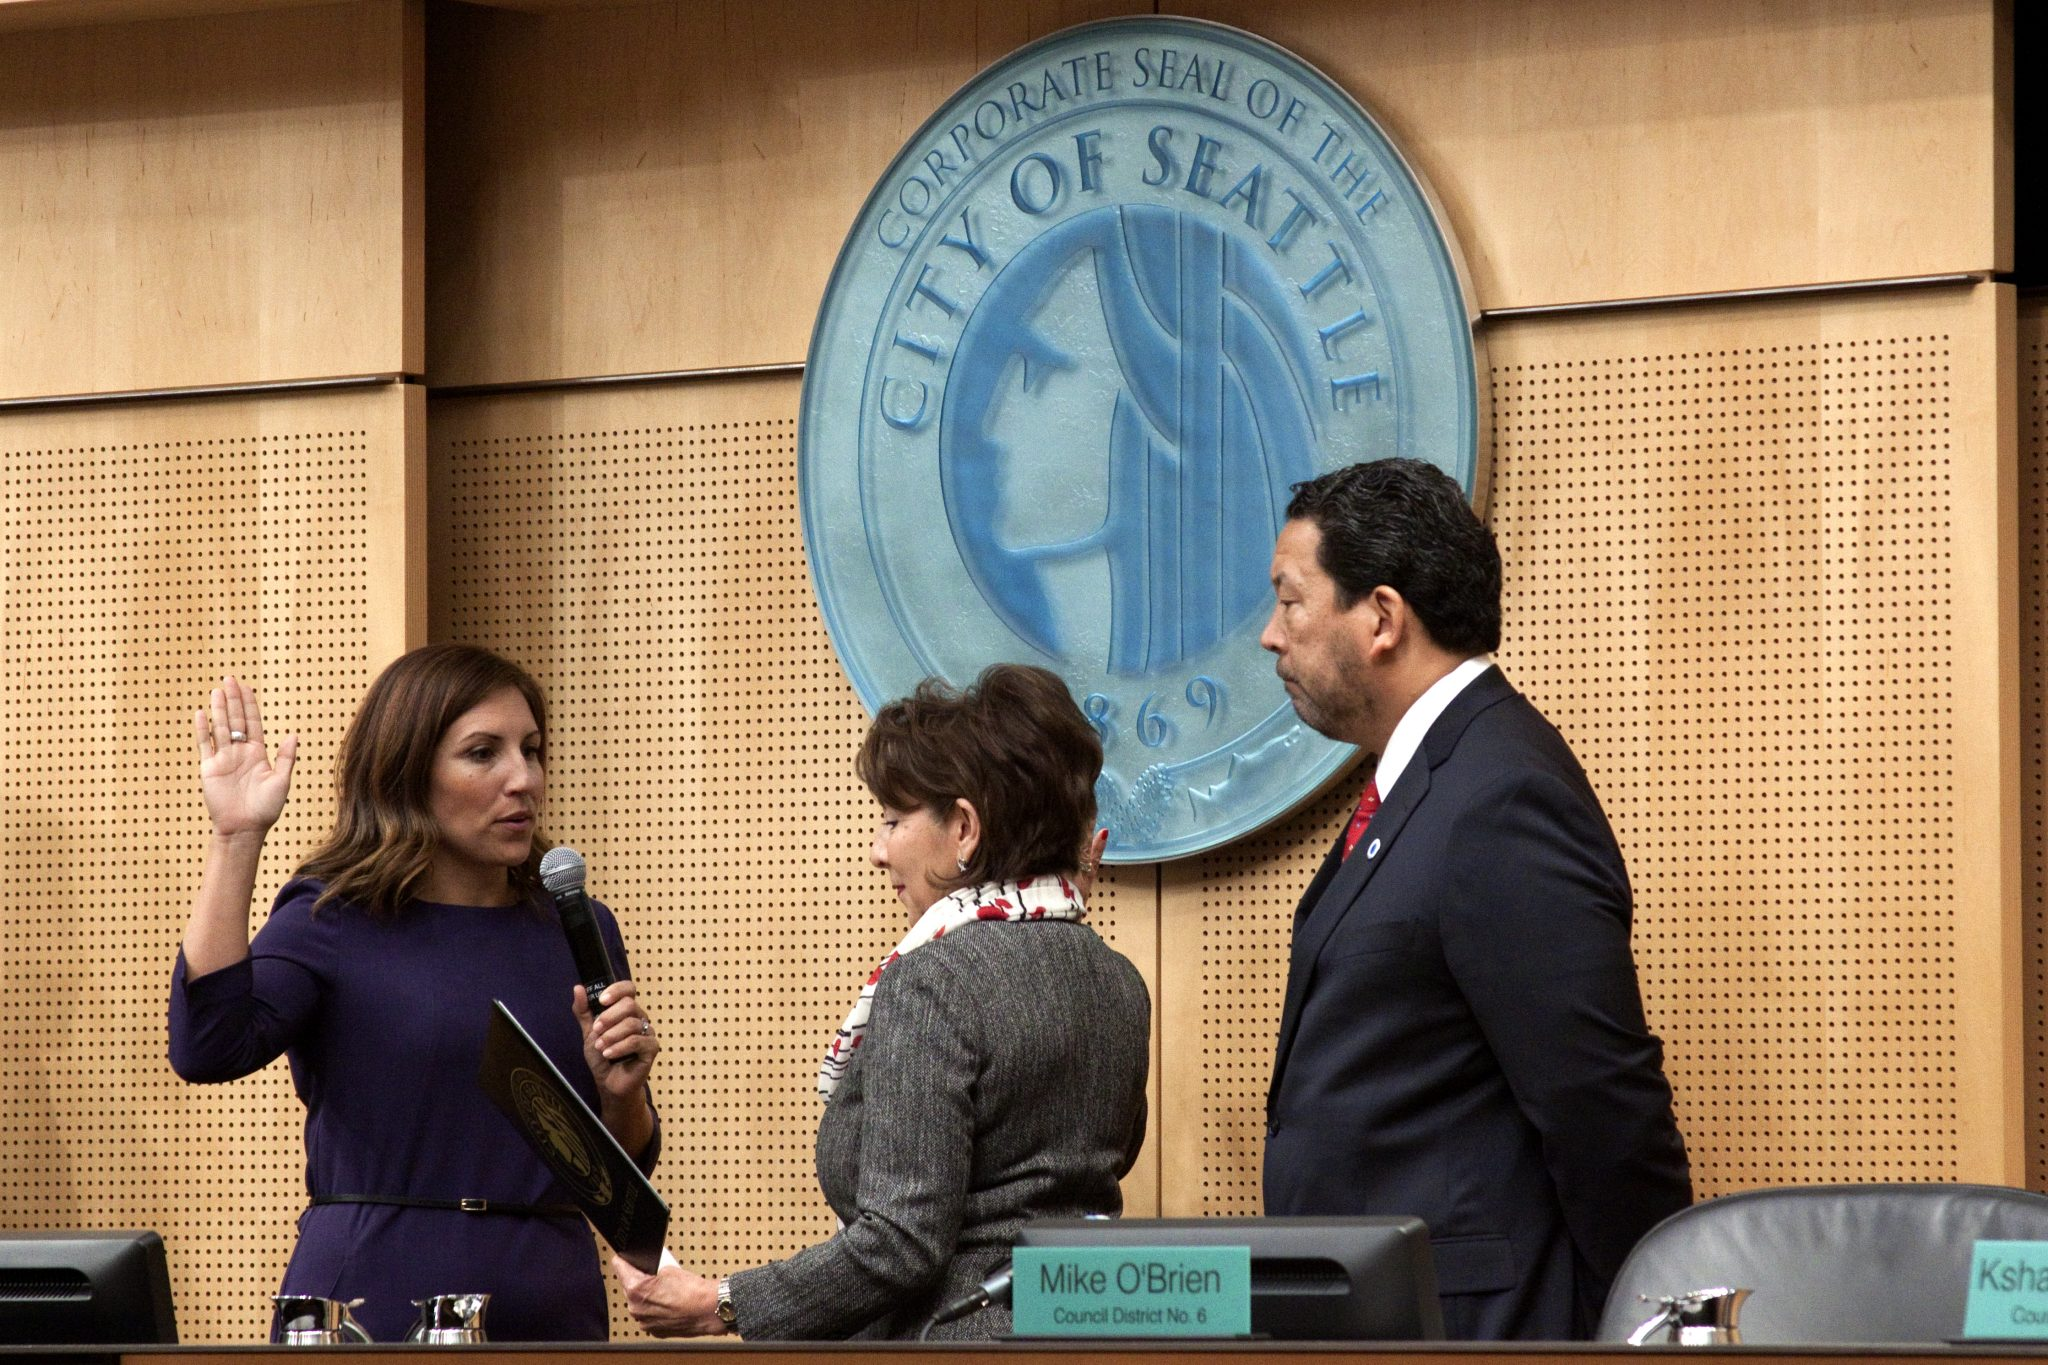 Seattle City Council Announces Committee Assignments, Search for New Council President